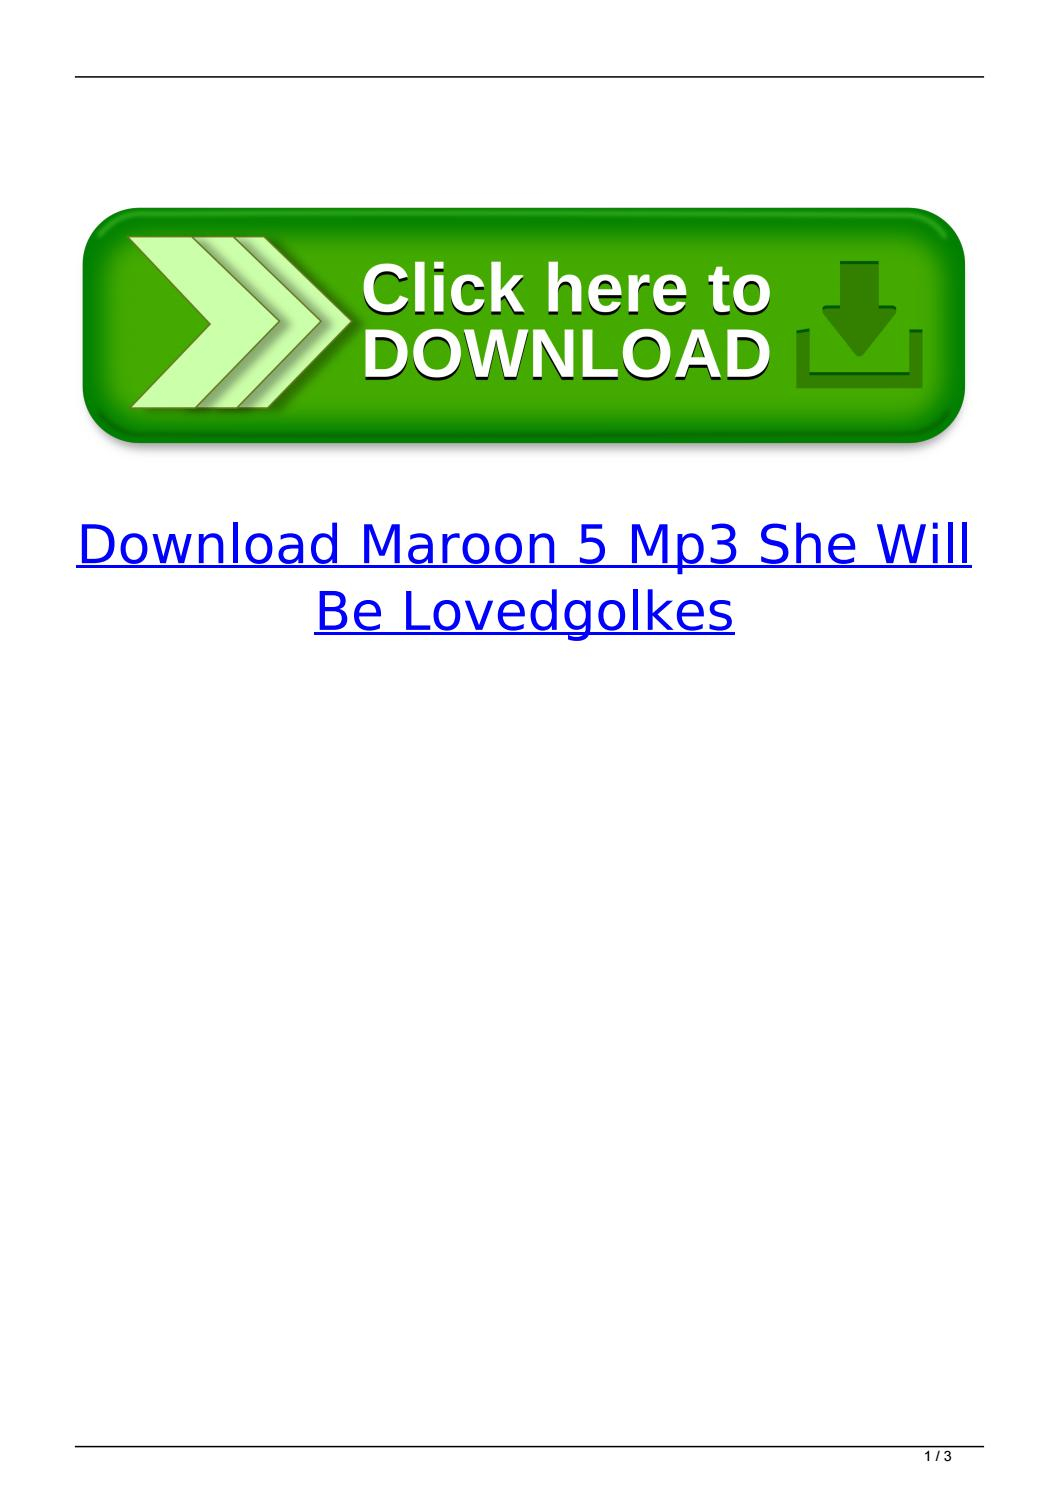 She Will Be Loved Chords Download Maroon 5 Mp3 She Will Be Lovedgolkes Sioseconre Issuu